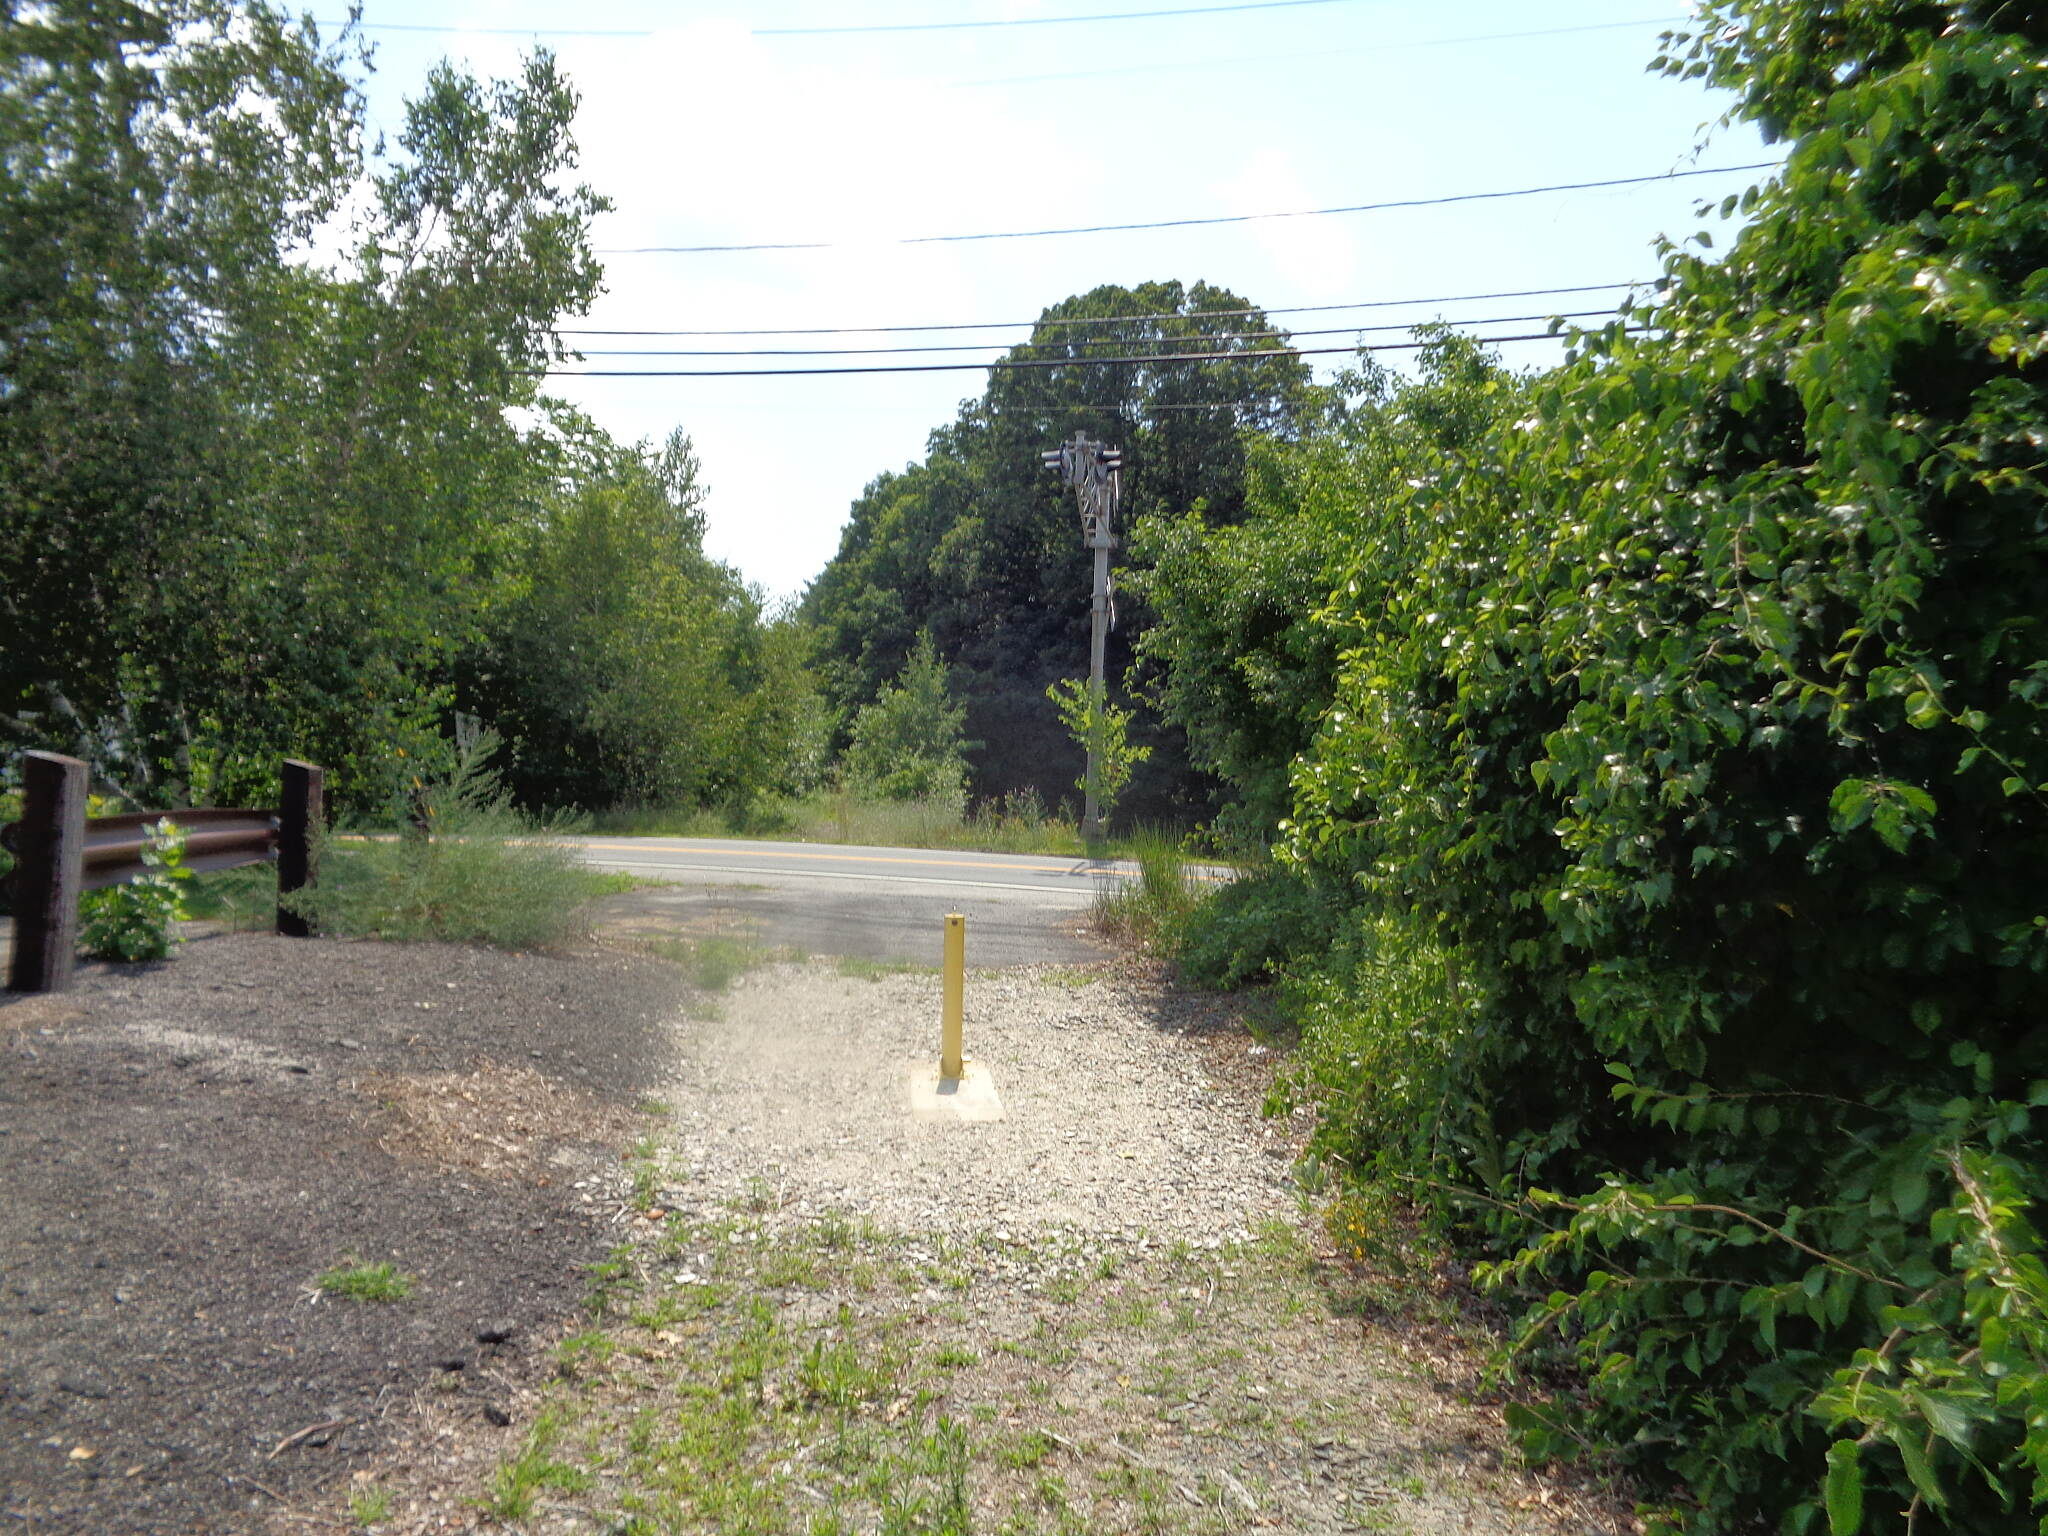 Grand Trunk Trail Route 12 crossing Looking west across Route 12 in Dudley 7/17/16. Trail is cleared on this side but overgrown across the highway.